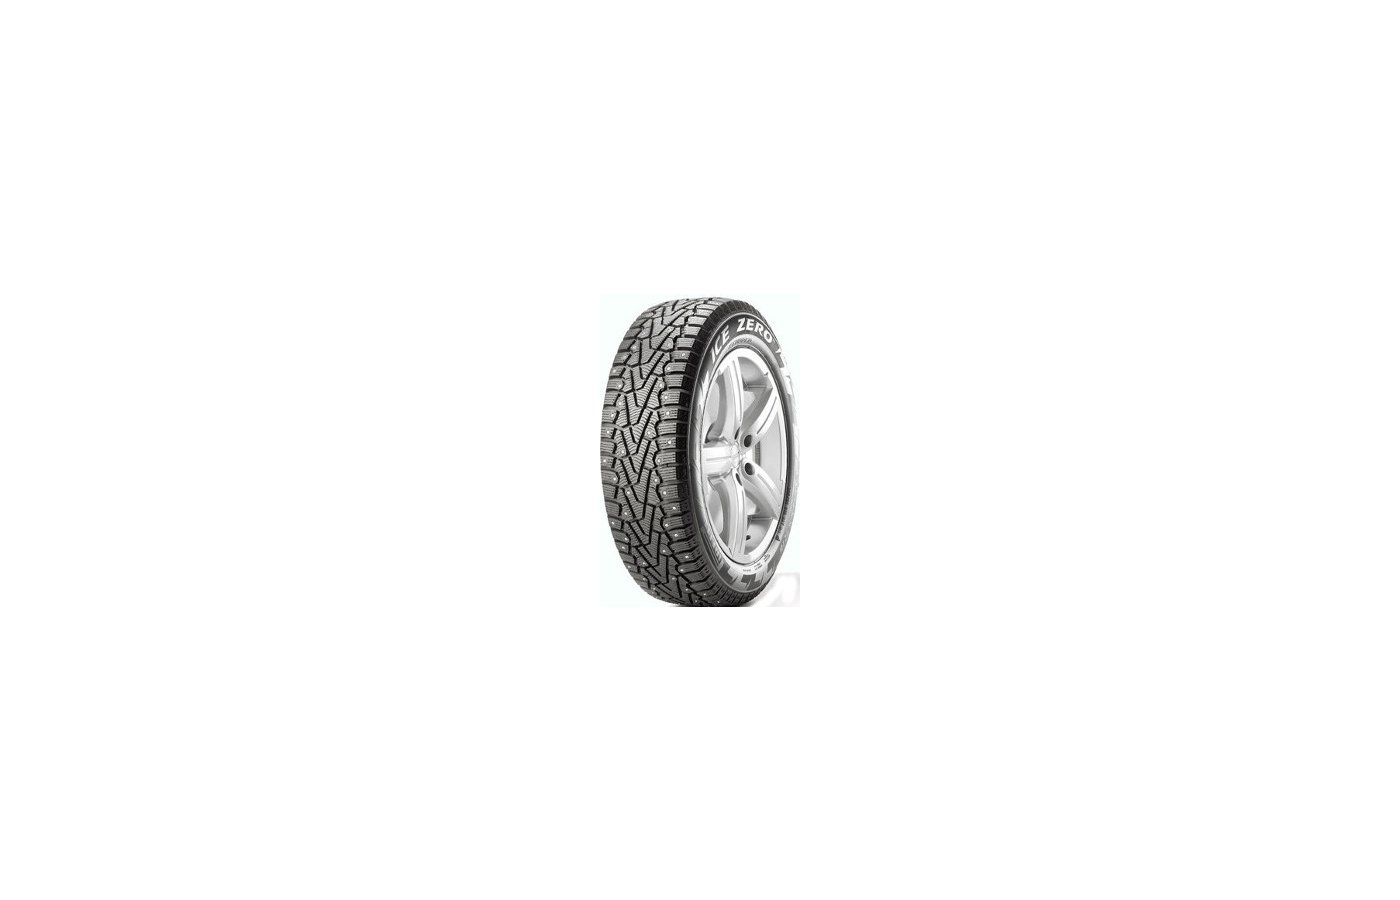 Шина Pirelli Winter Ice Zero 265/40 R21 TL 105H XL шип